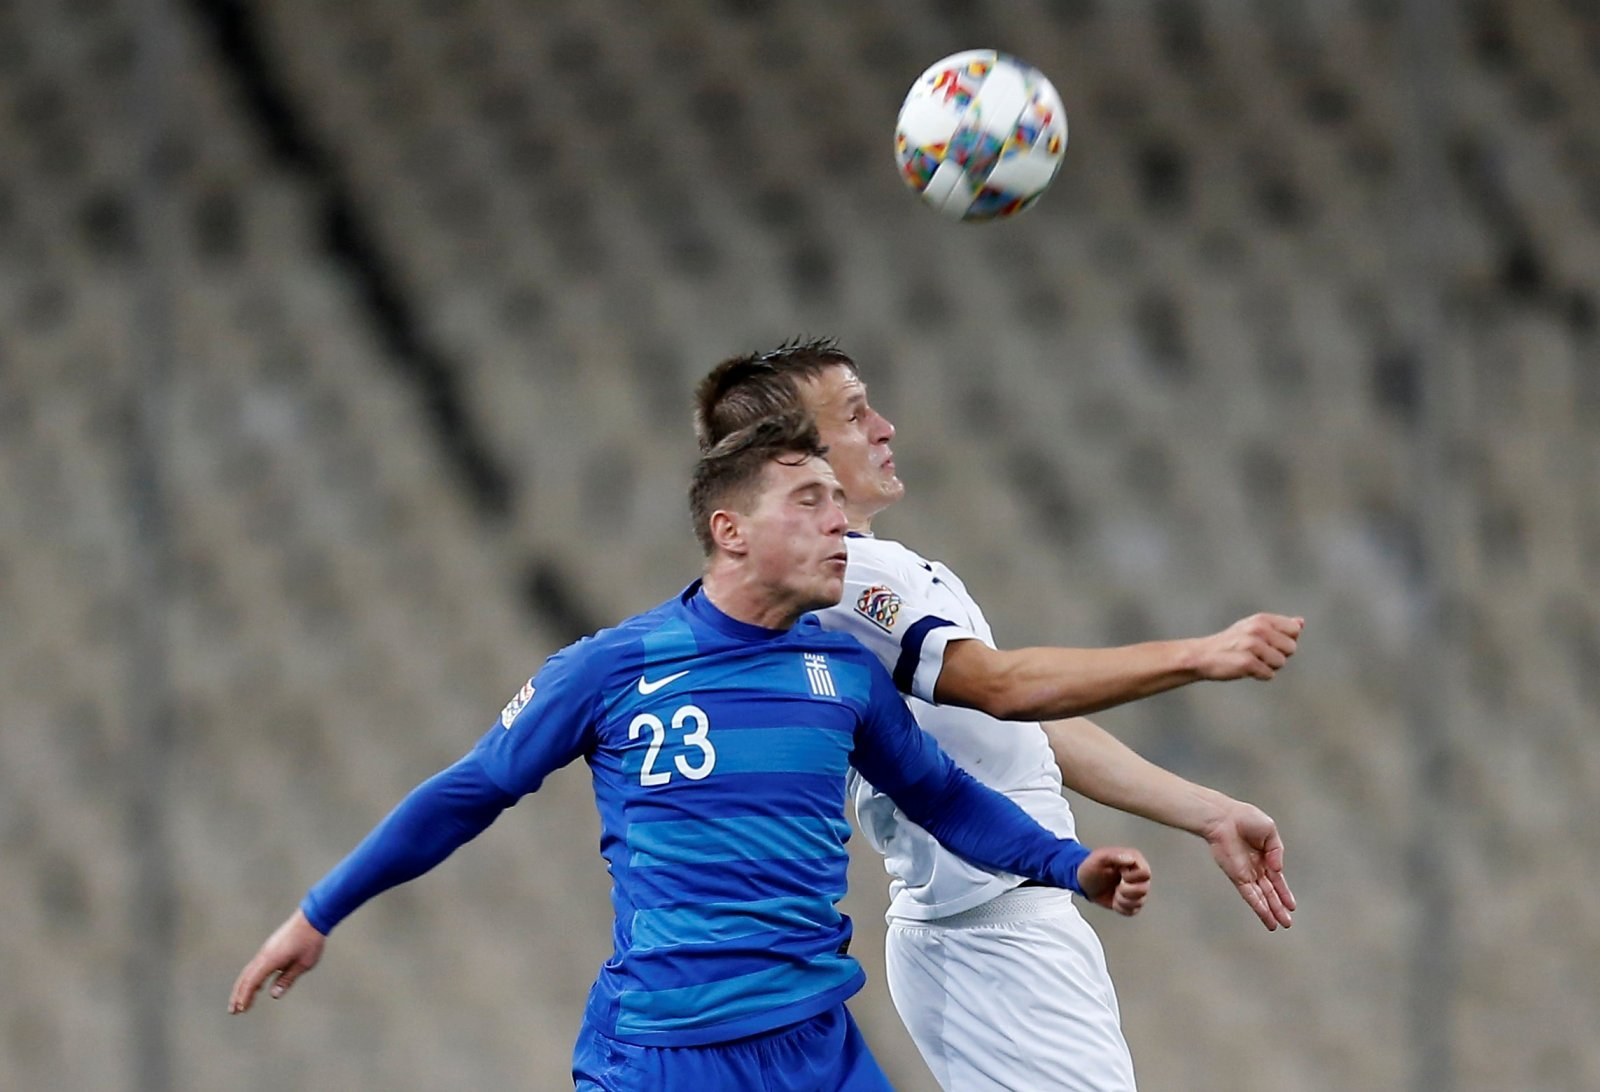 Newcastle: Leonardo Koutris would be an ideal signing for Geordies